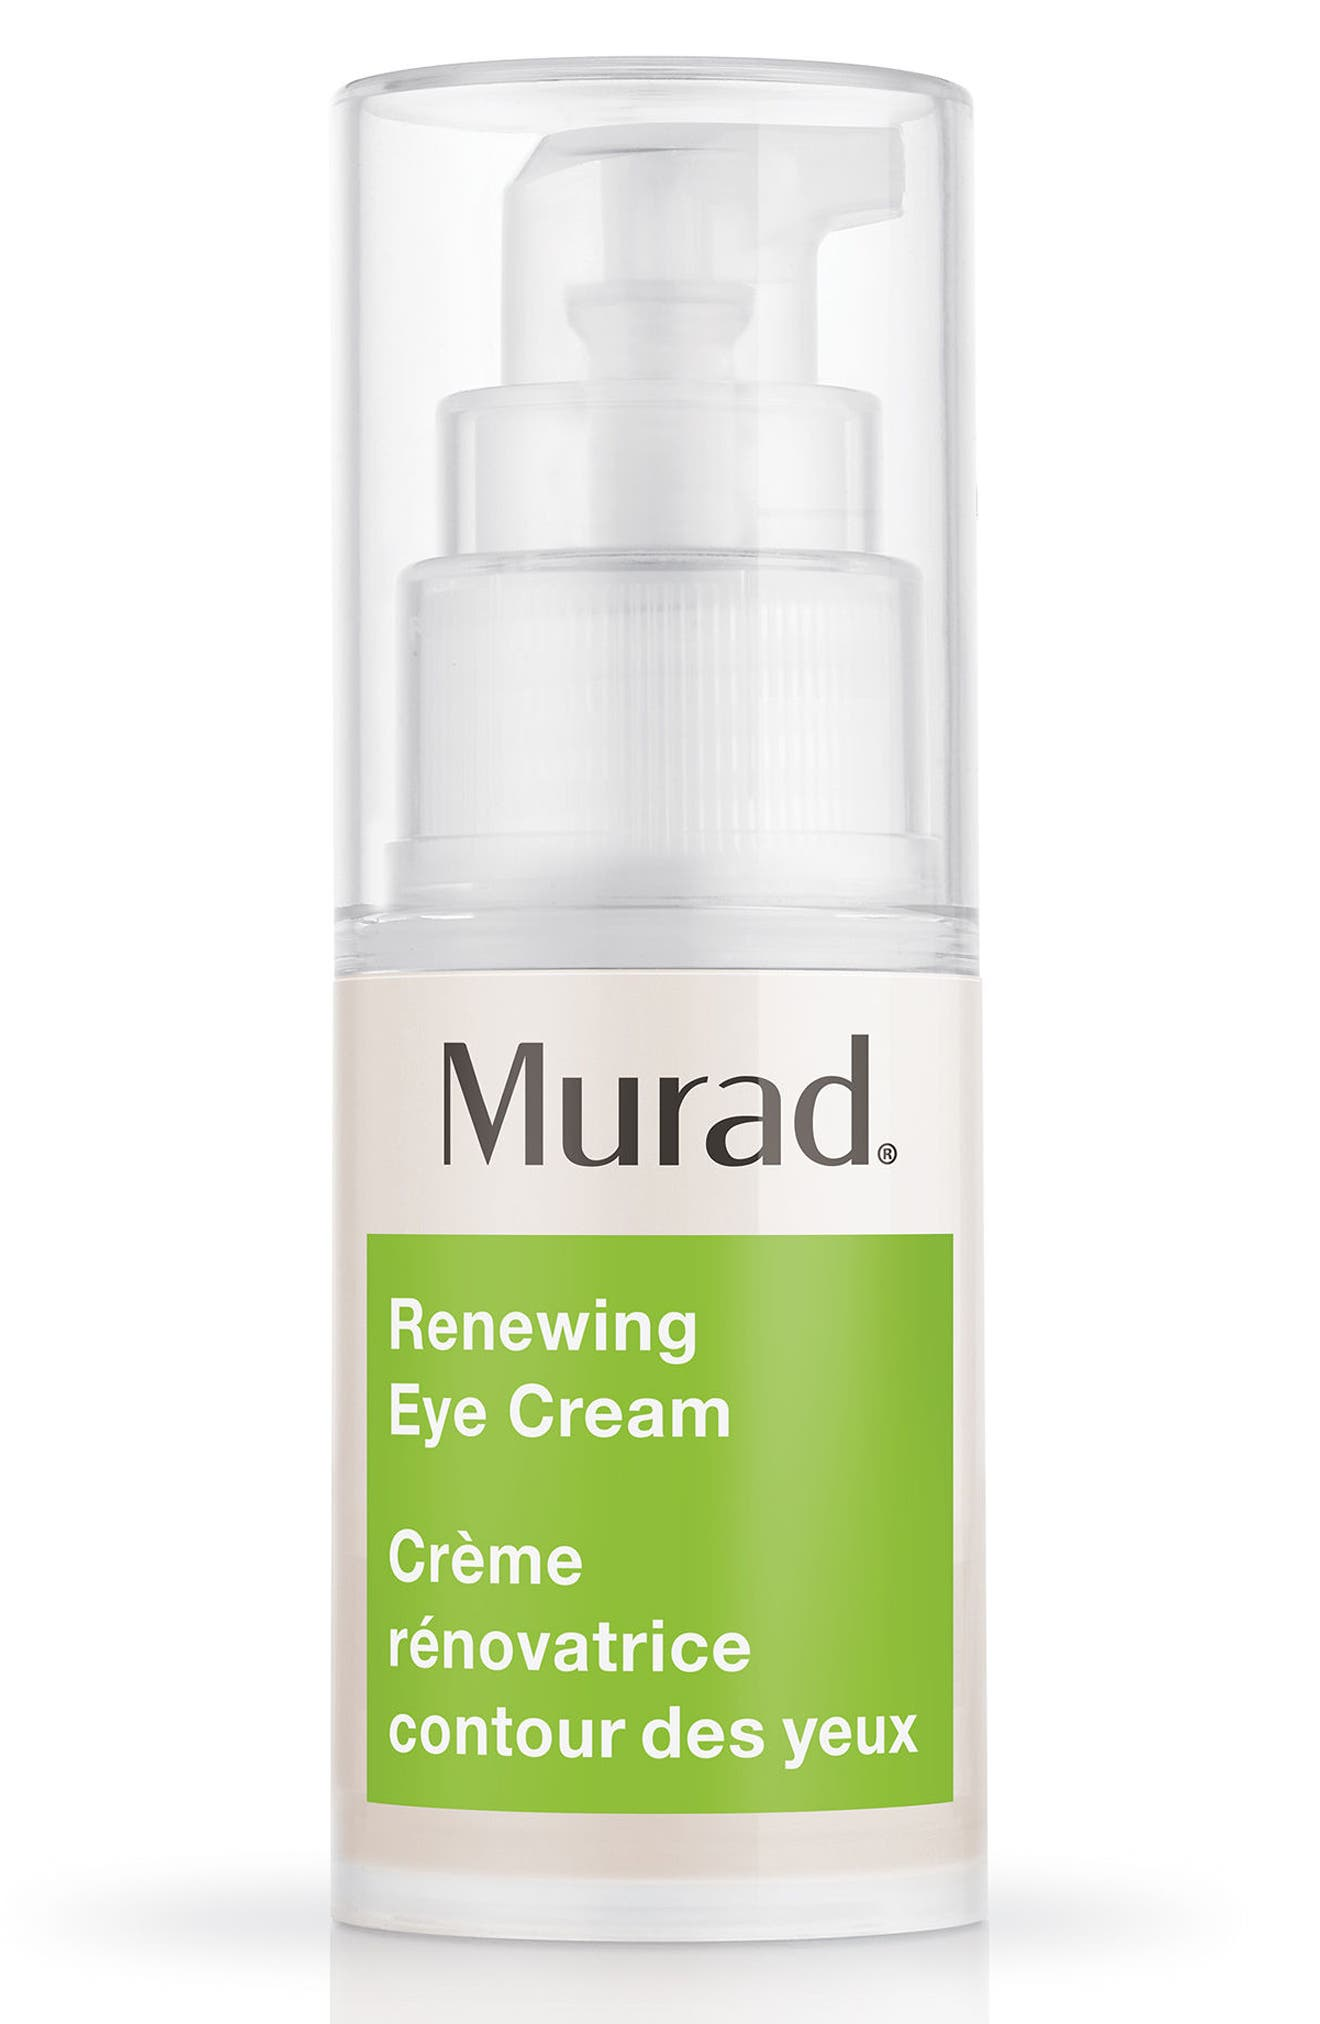 Murad® Renewing Eye Cream